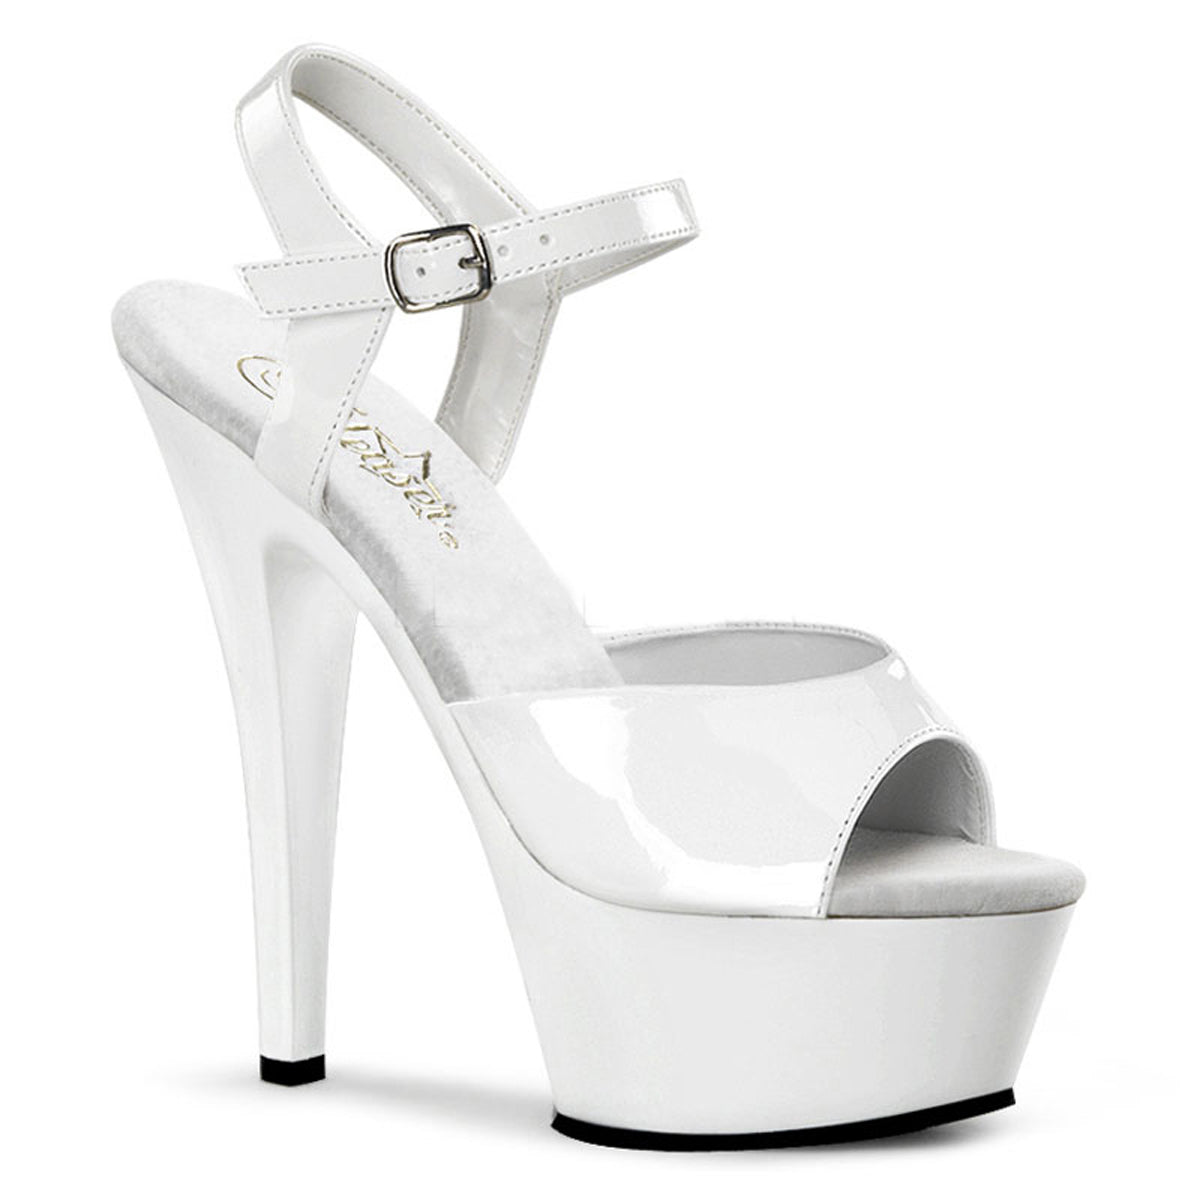 Patent Stiletto Heel with Ankle Strap (Kiss 209)